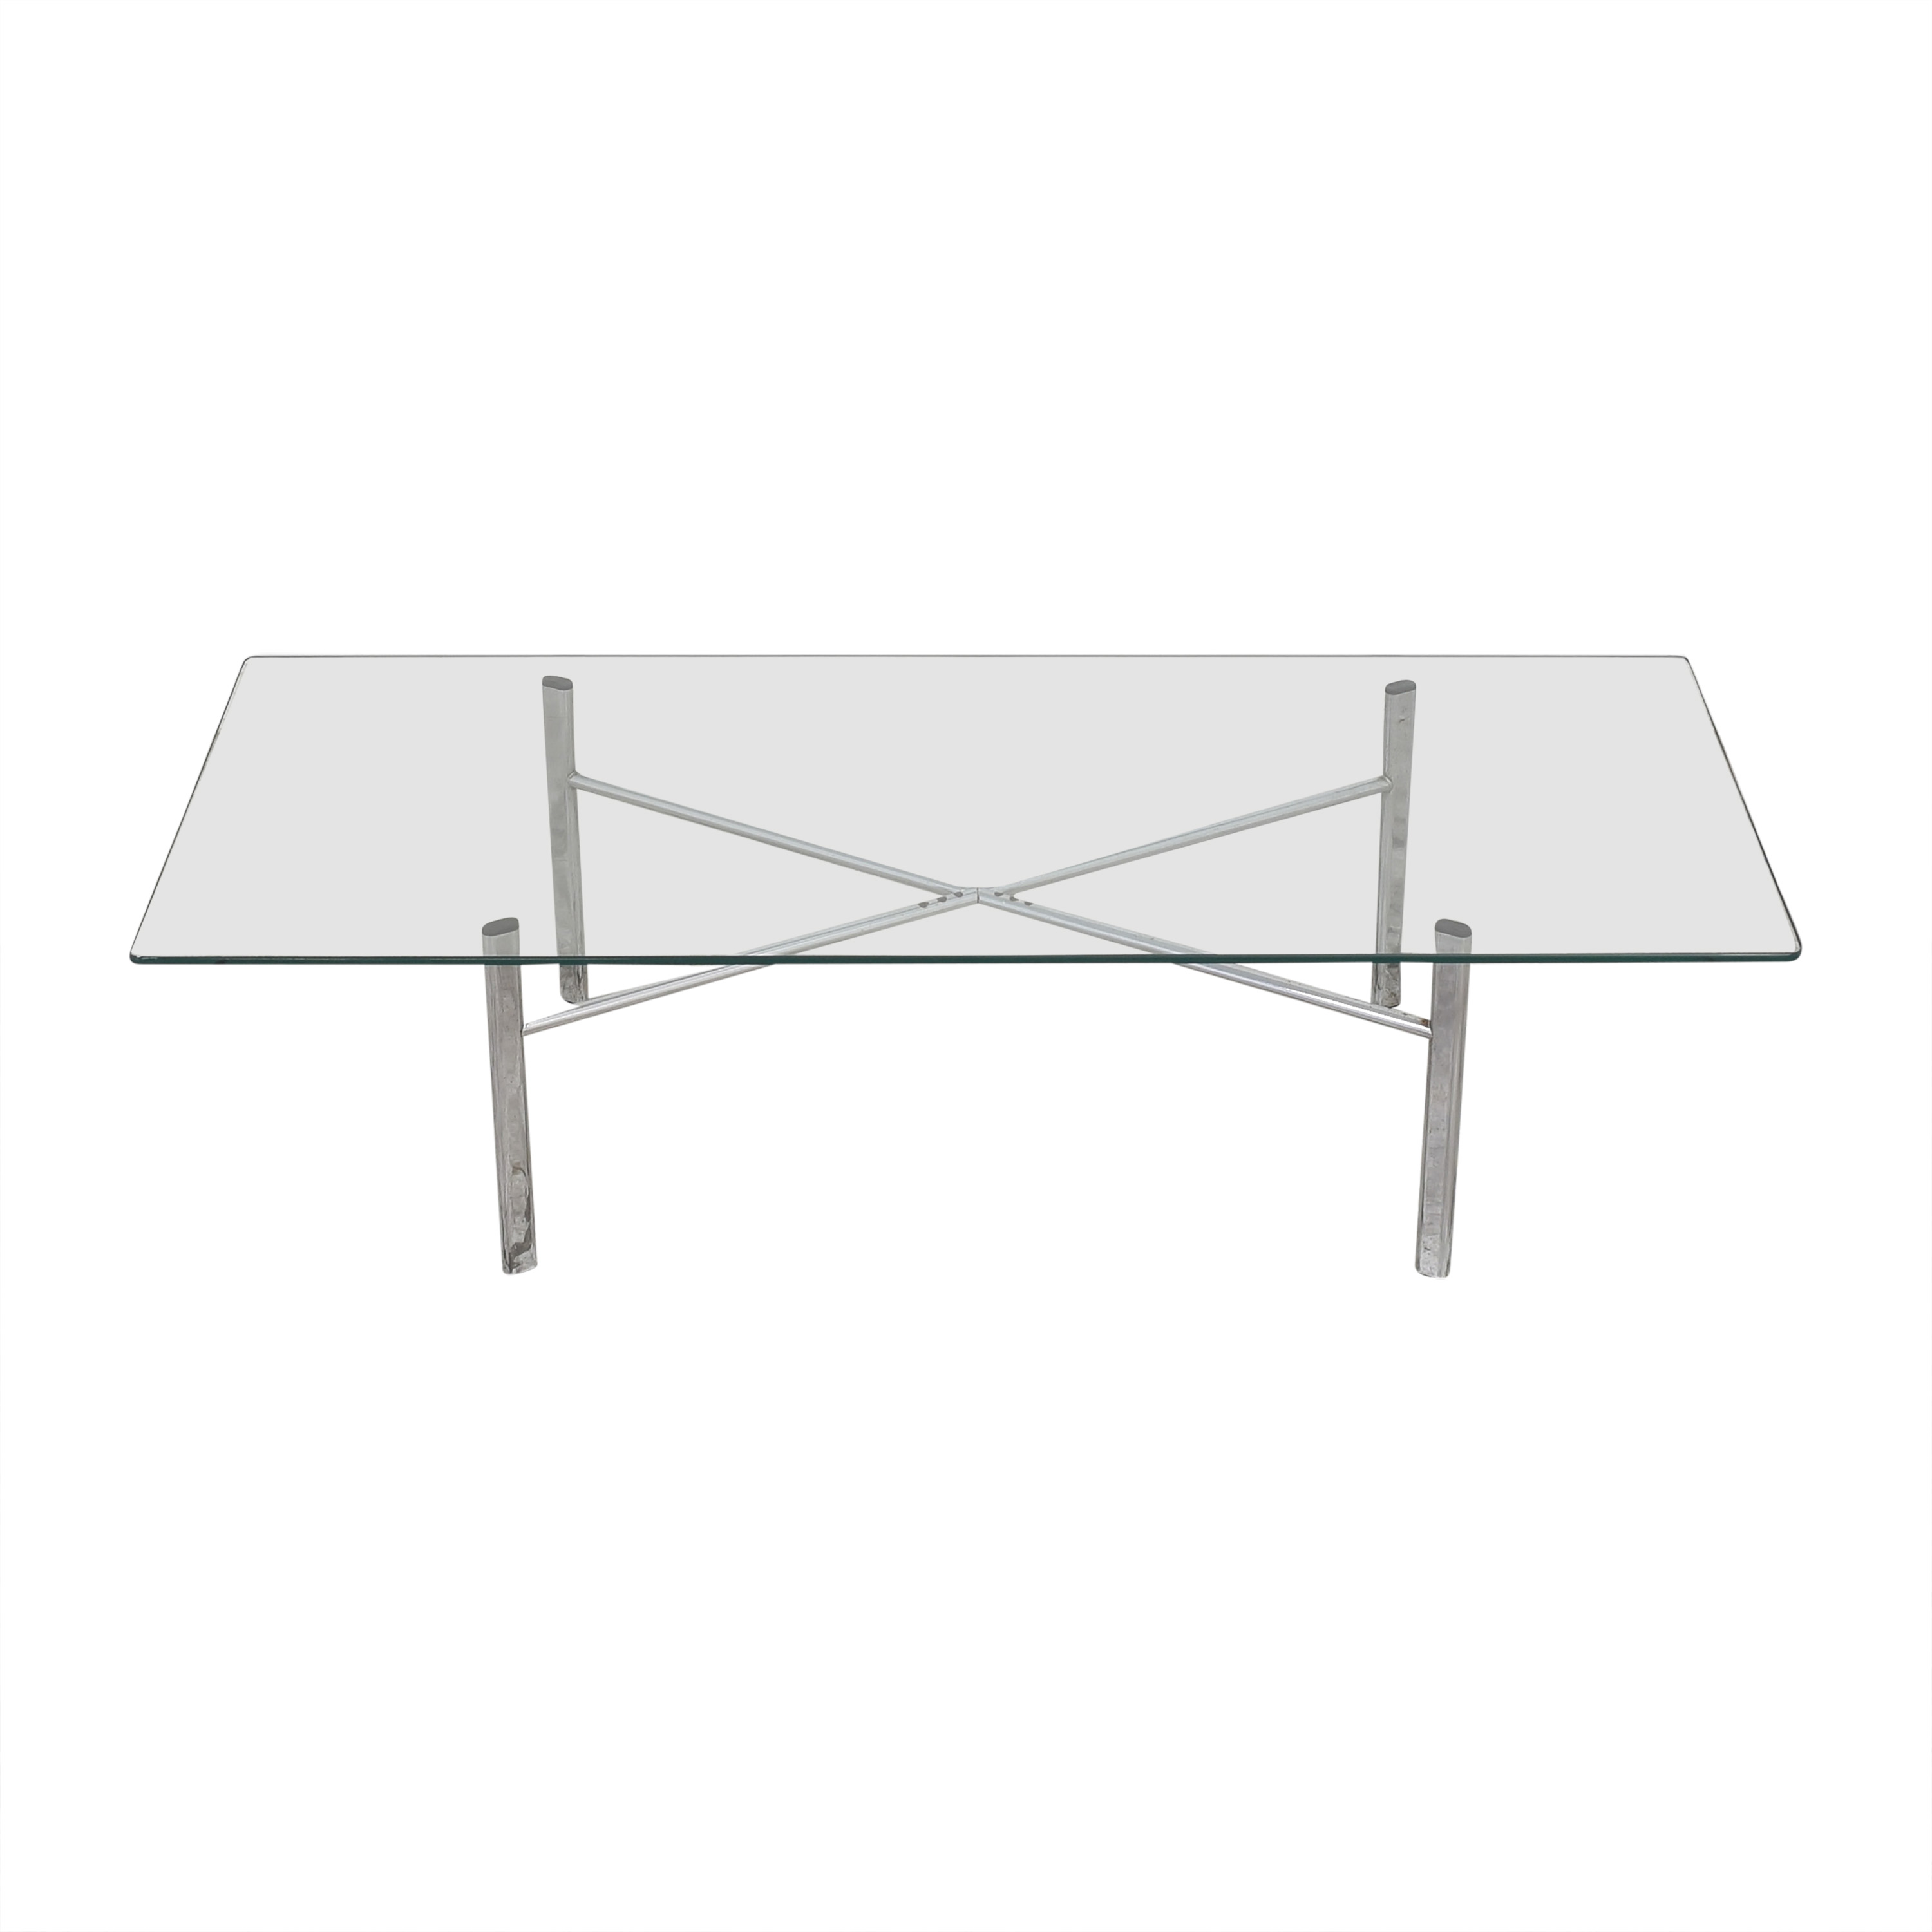 Custom Modern Coffee Table with Transparent Surface silver